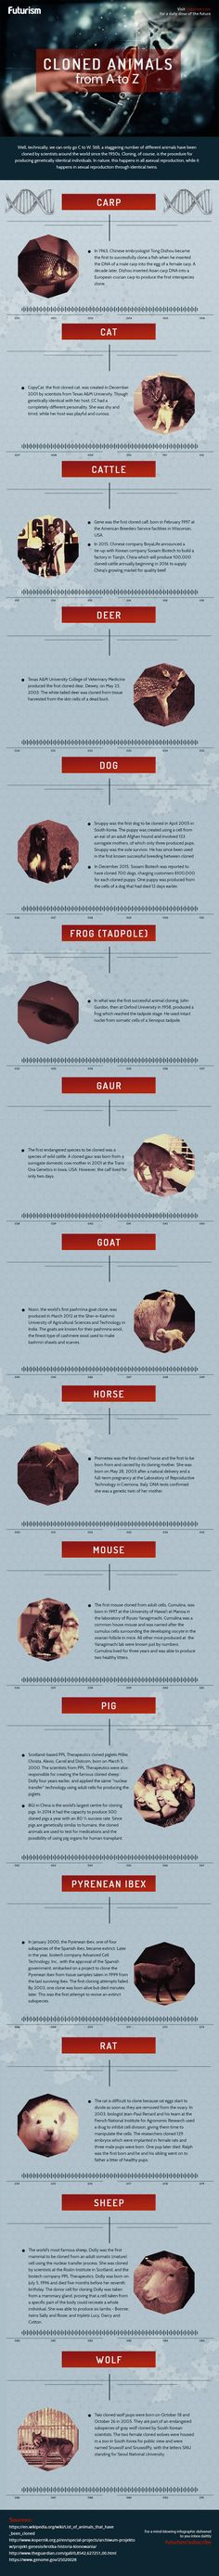 Seeing Double: The History of Animal Cloning — You've heard of Dolly the Sheep. She was heralded as the first cloned mammal; however, that claim isn't technically true.  — https://futurism.com/images/seeing-double-the-history-of-cloning/